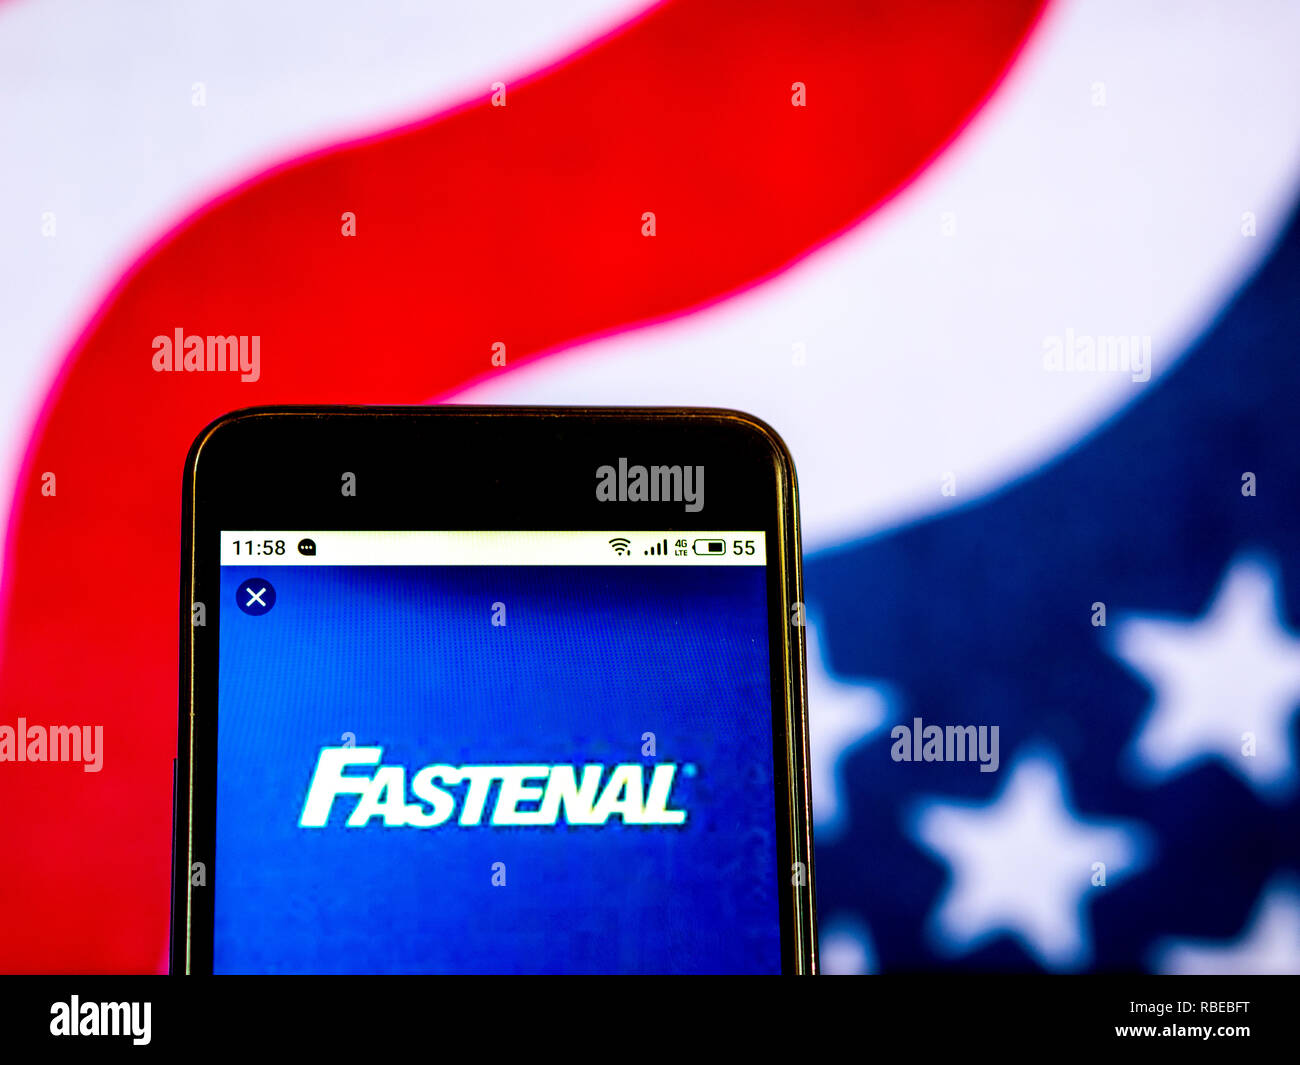 9c239b3bf7d3 Fastenal Industrial supplies company logo seen displayed on smart phone.